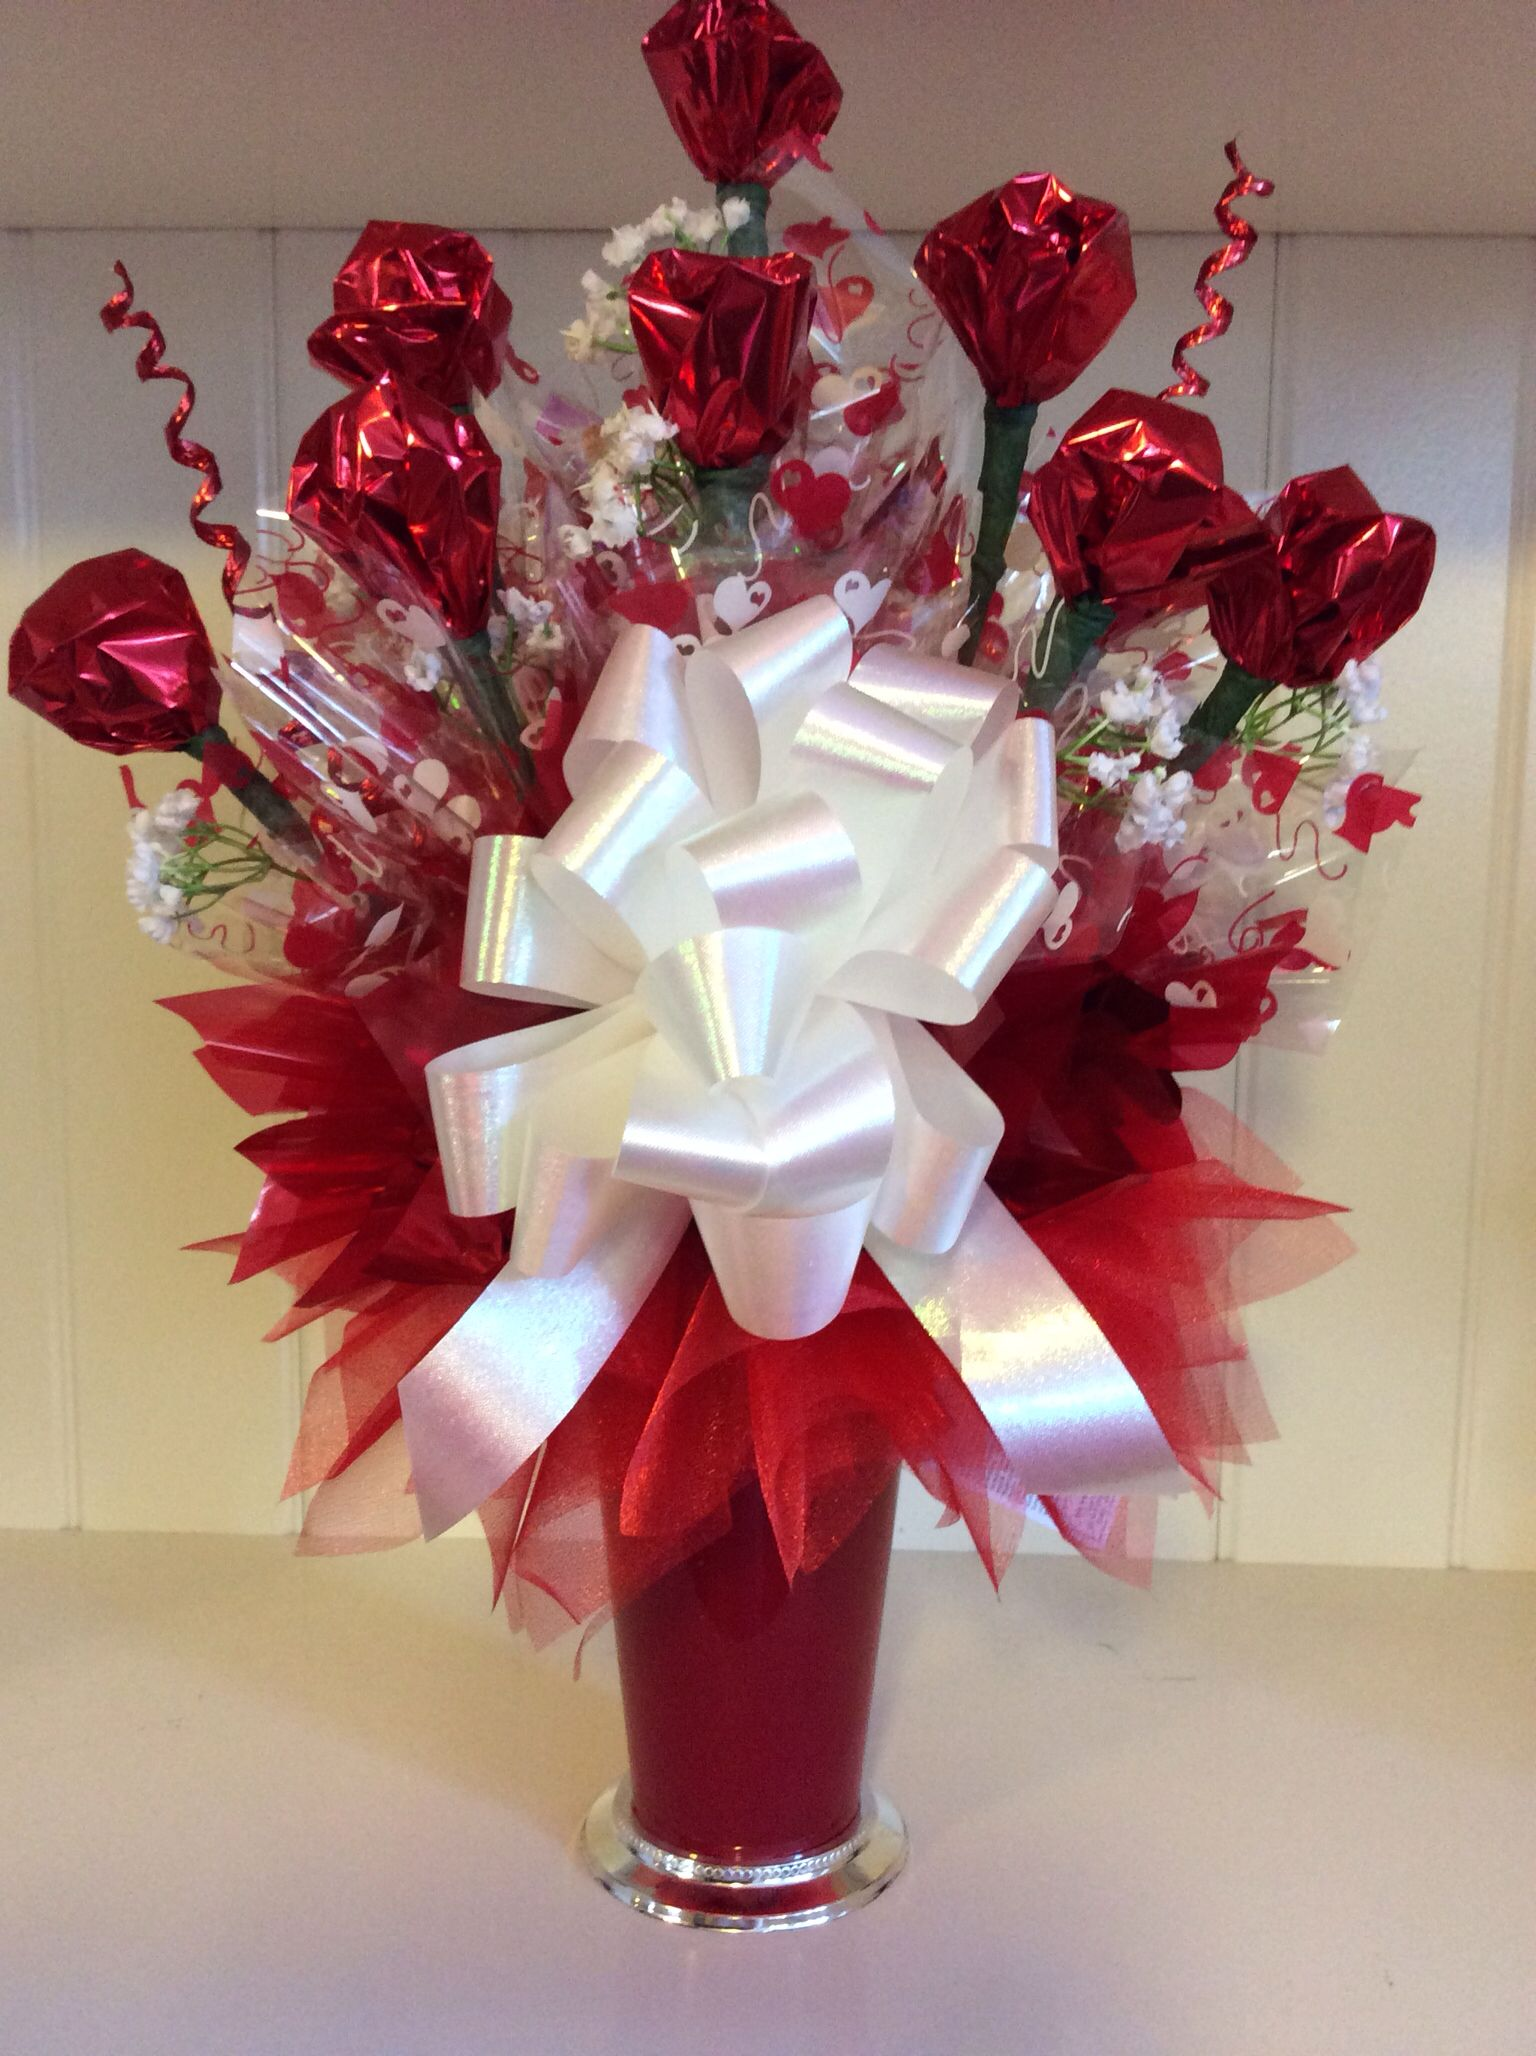 Hand Wrapped Chocolate Truffle Roses 49 99 Valentine Bouquet Valentines Candy Bouquet